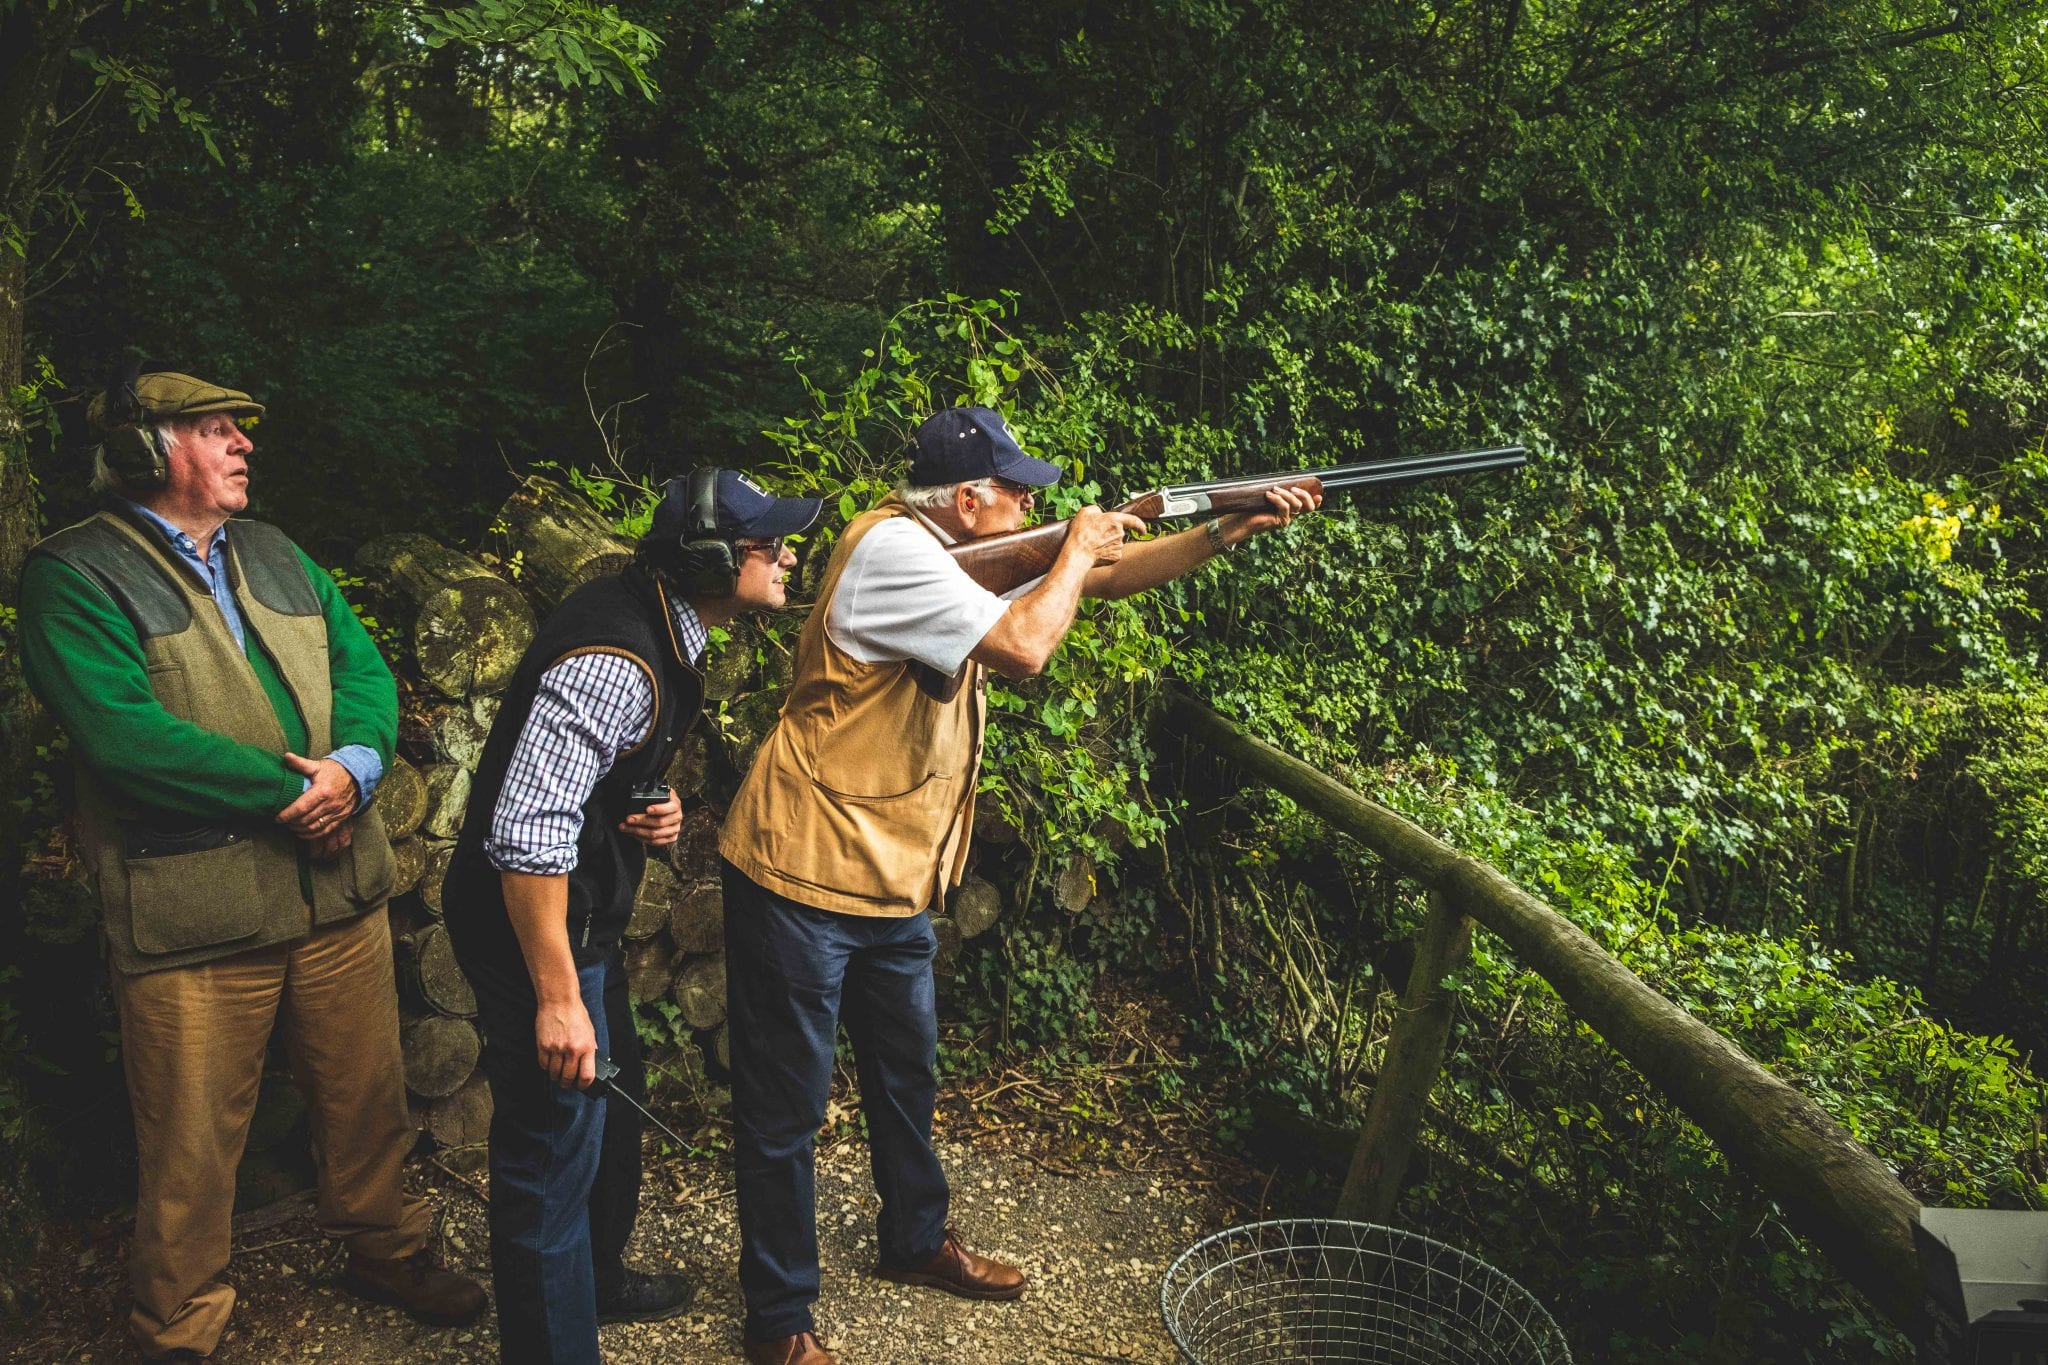 Corporate event at Lady's Wood Shooting School